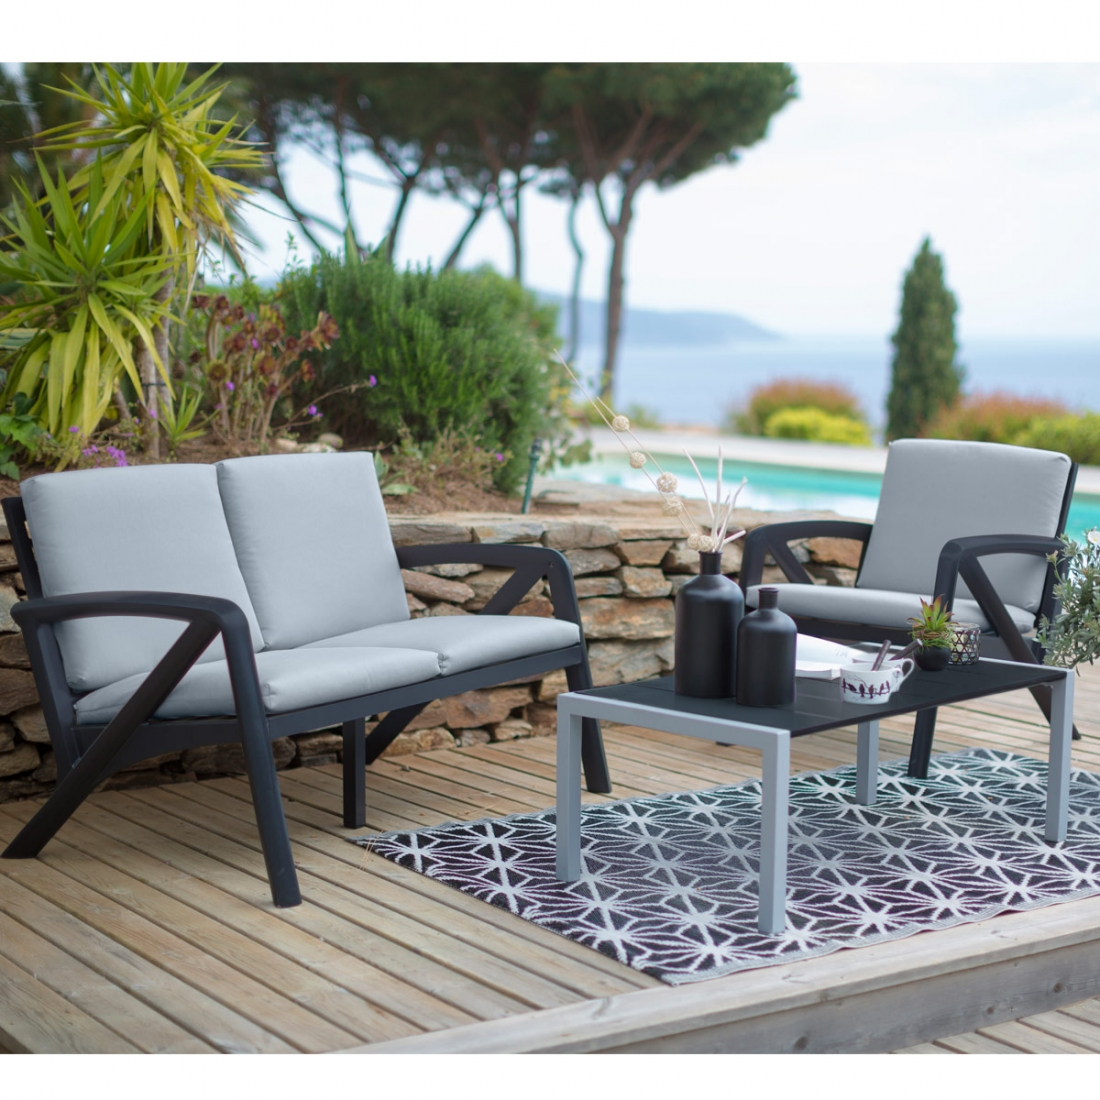 Salon de jardin lounge sunday barcelone design grosfillex for Ou acheter un salon de jardin